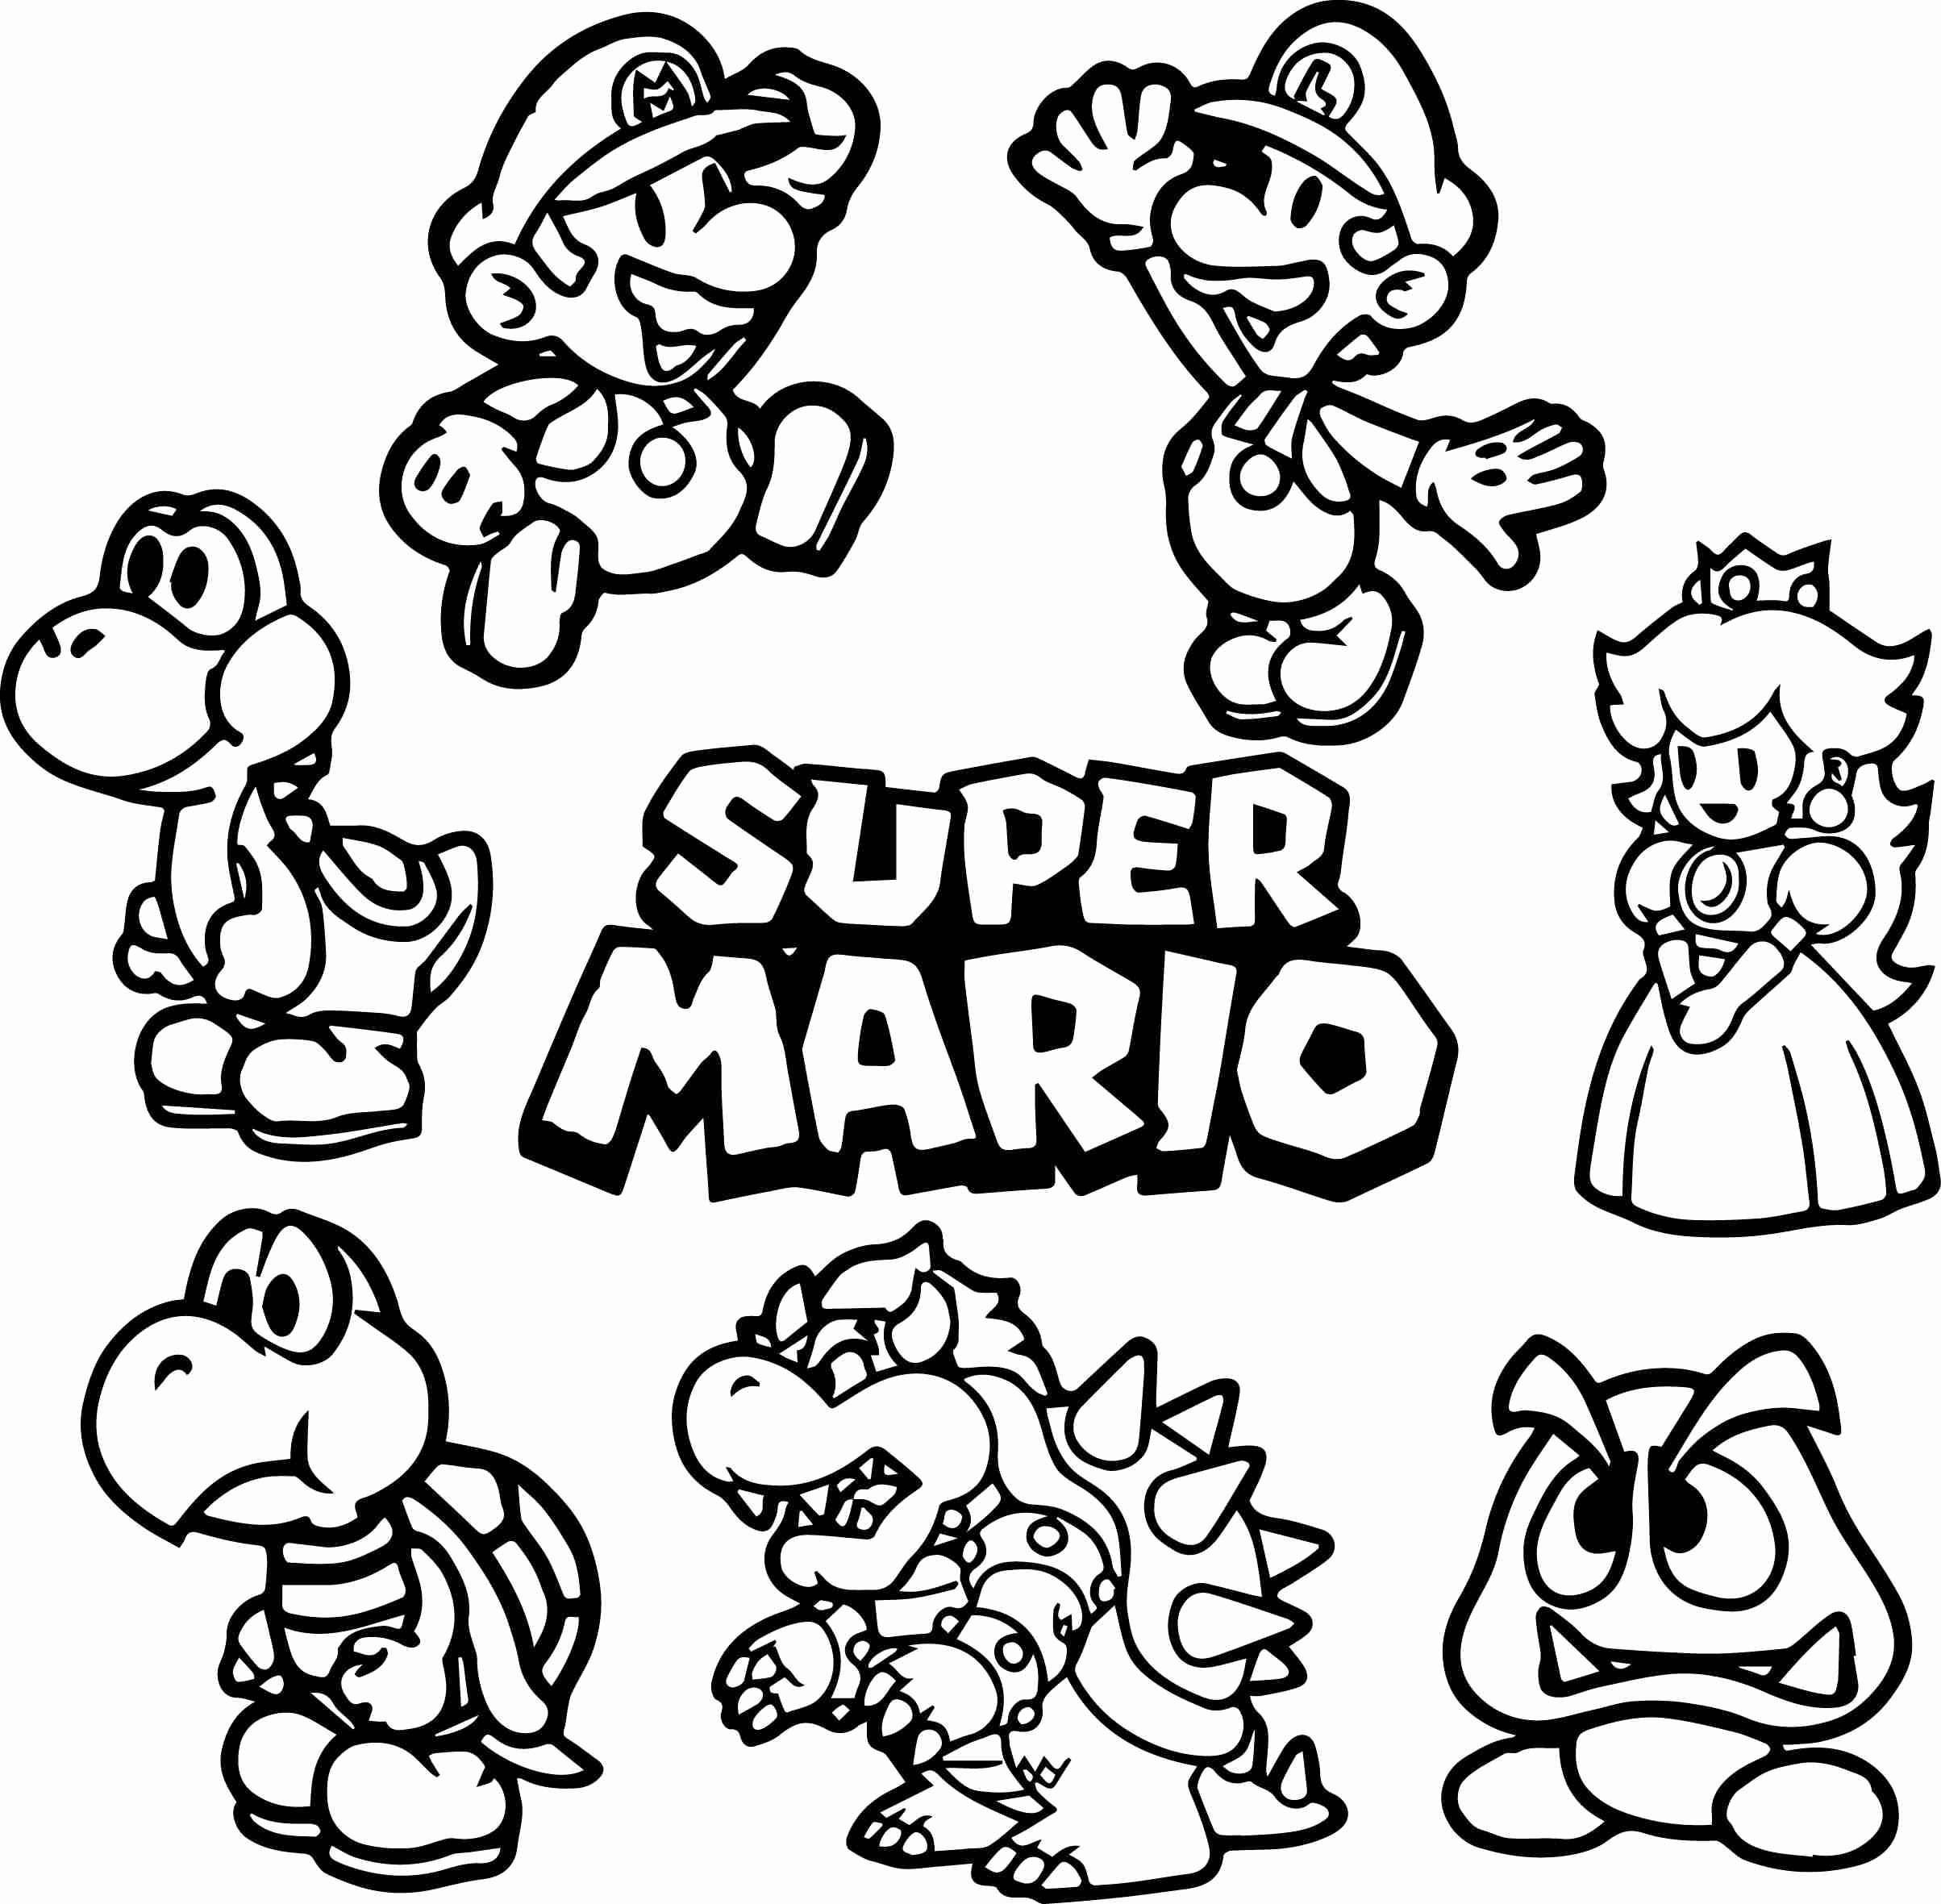 Anime Girl Ausmalbilder Einzigartig Mario Coloring Pages for Boys Download Ausmalbilder Super Mario Das Bild